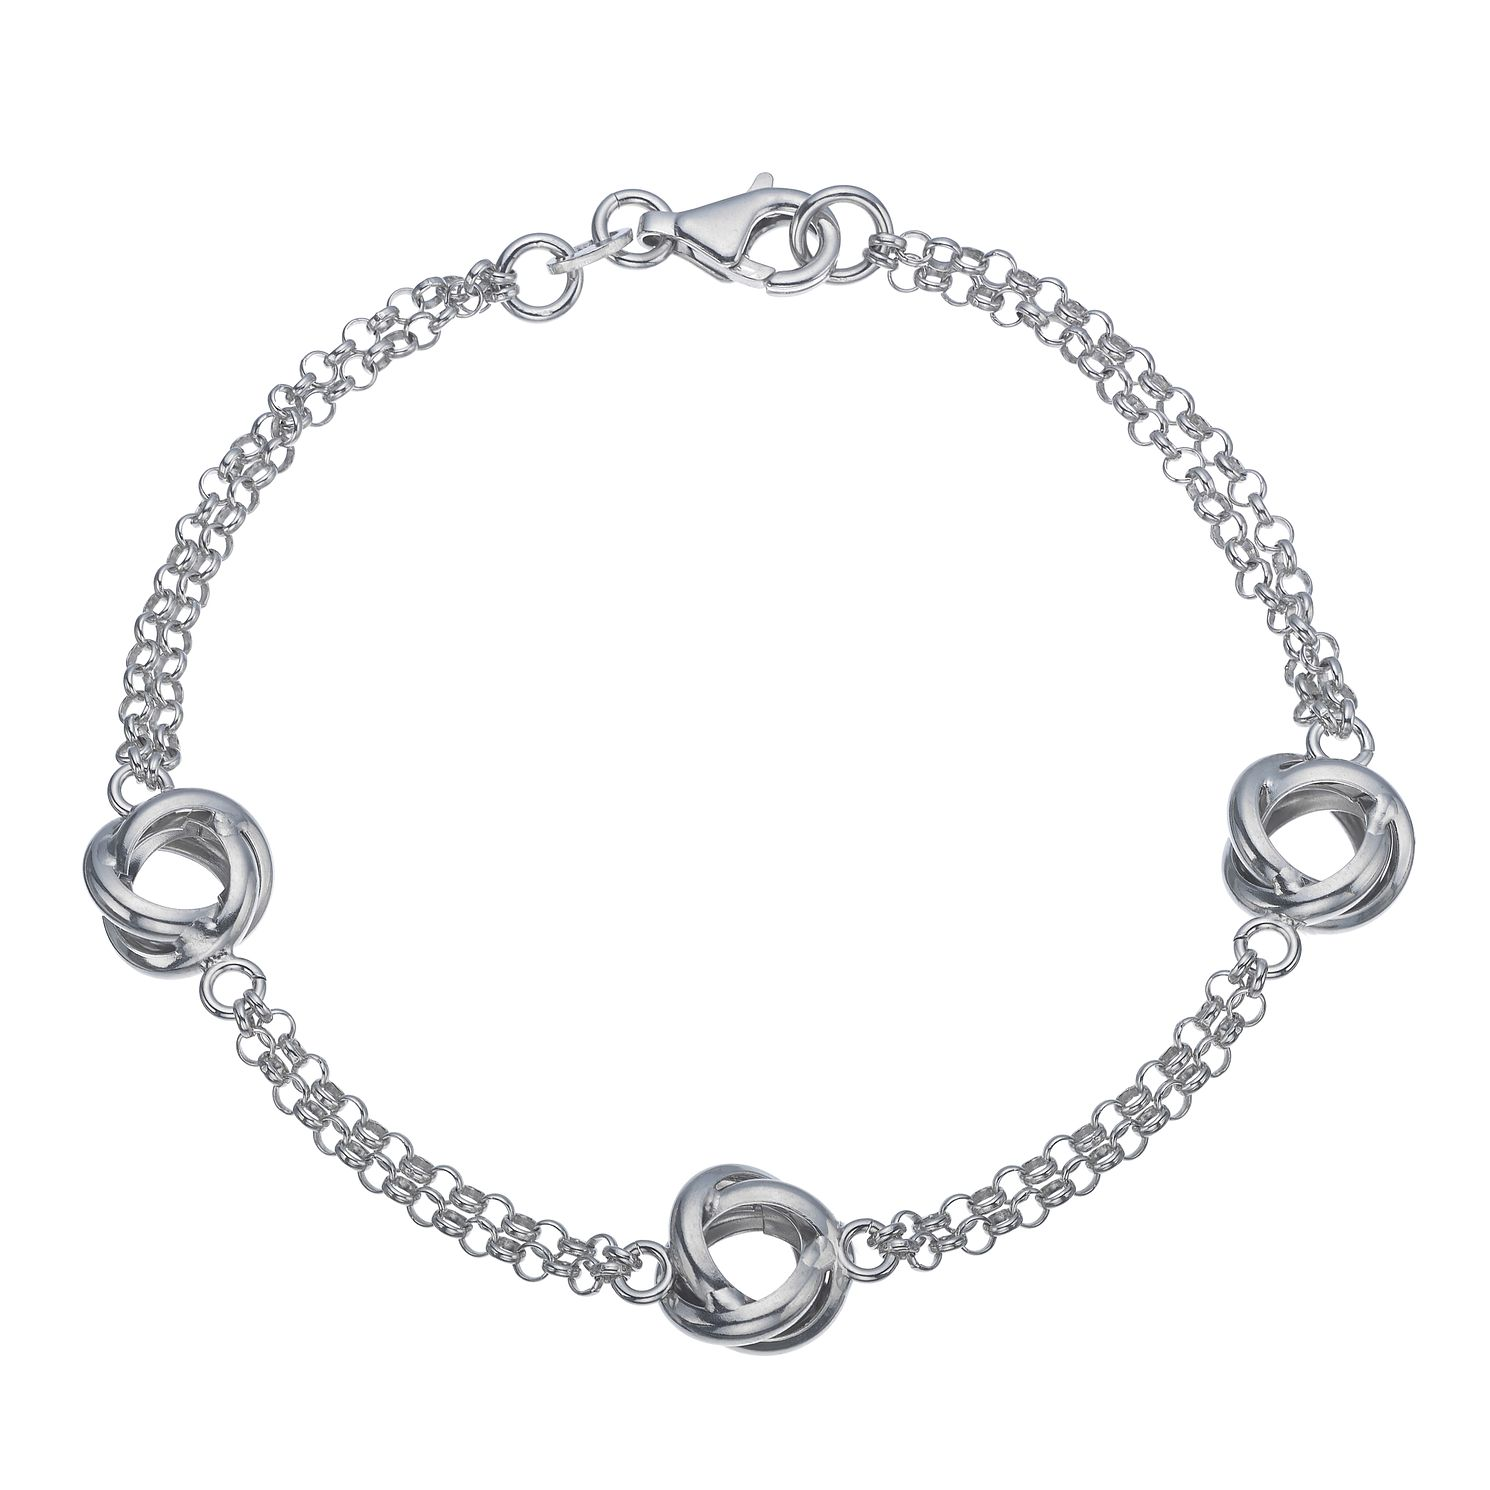 Silver Triple Knot Chain Bracelet - Product number 5527066